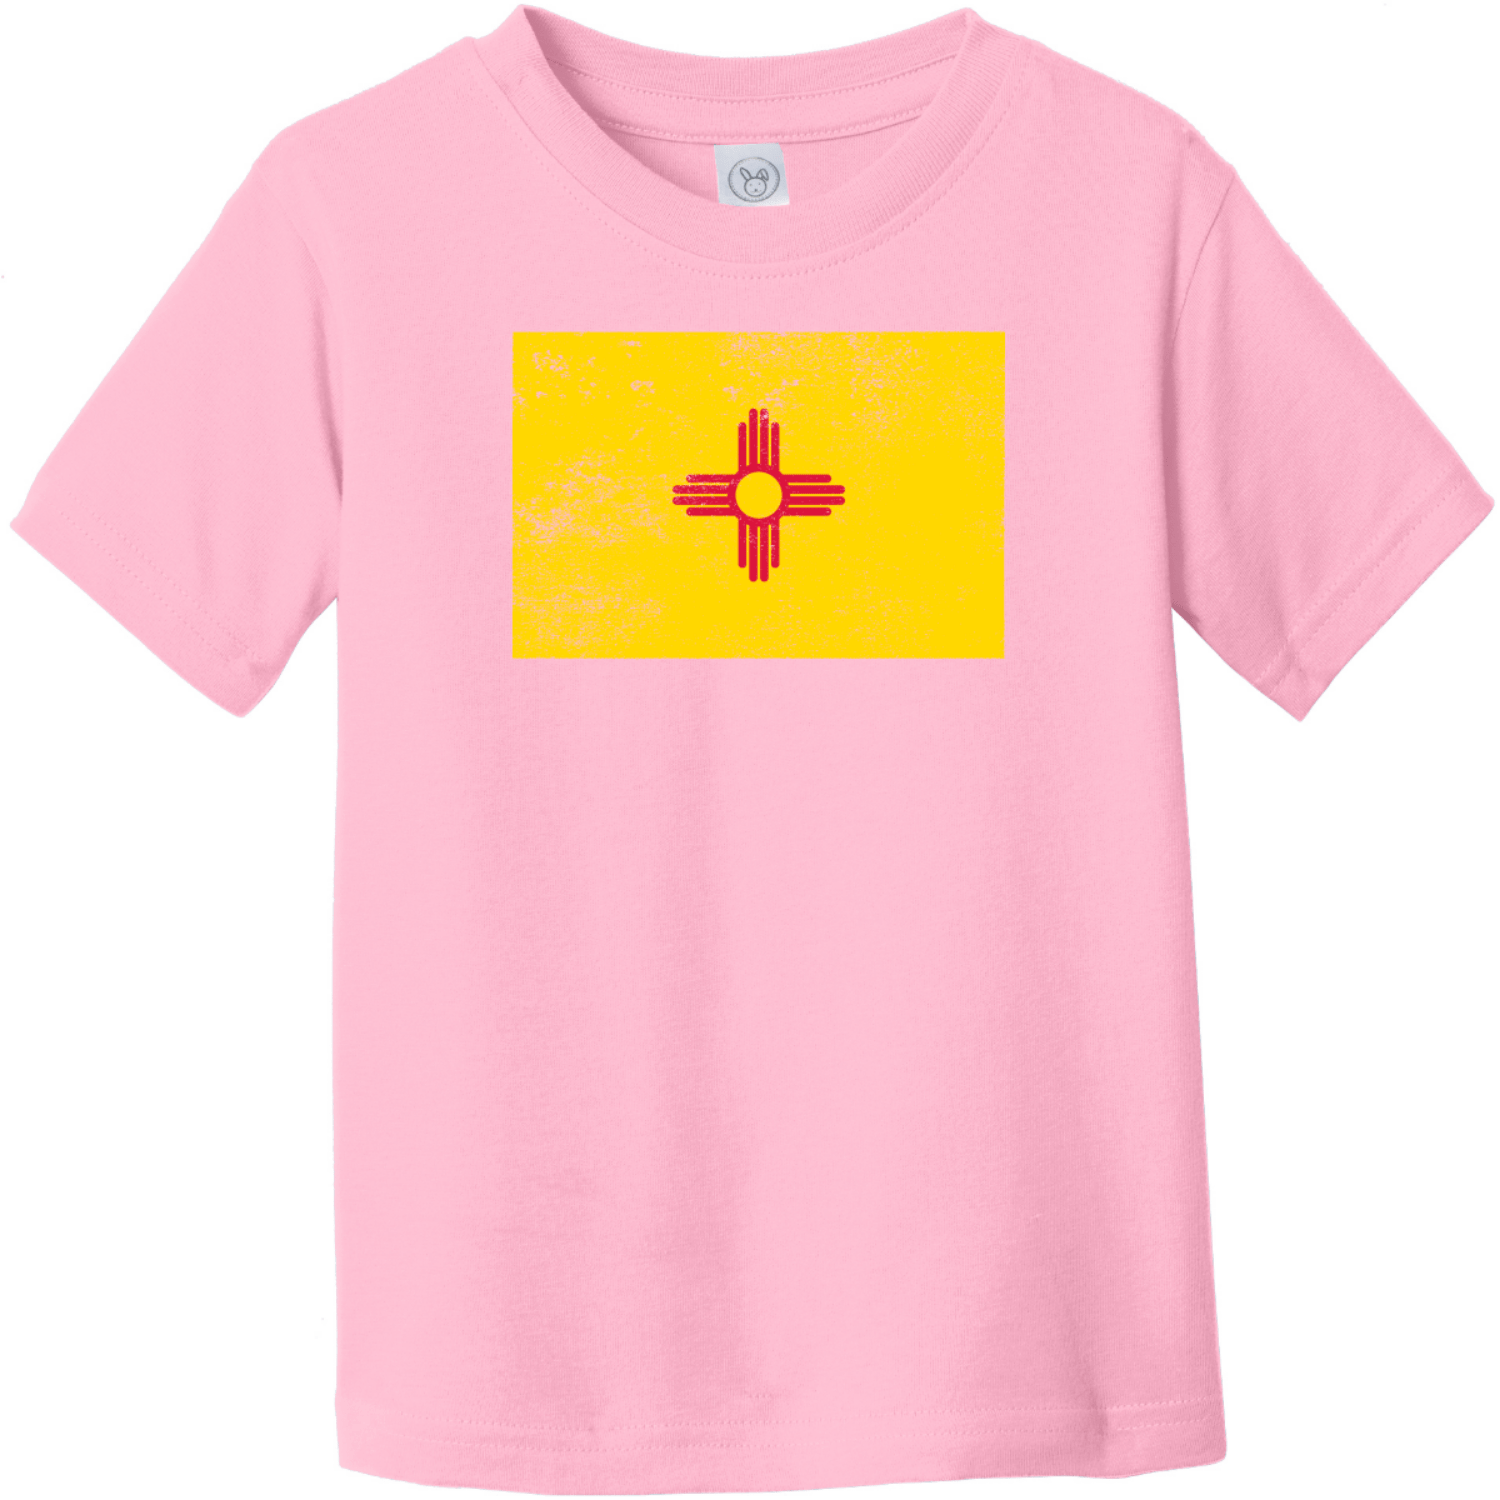 New Mexico Vintage Toddler T-Shirt Pink Rabbit Skins Toddler Fine Jersey Tee RS3321